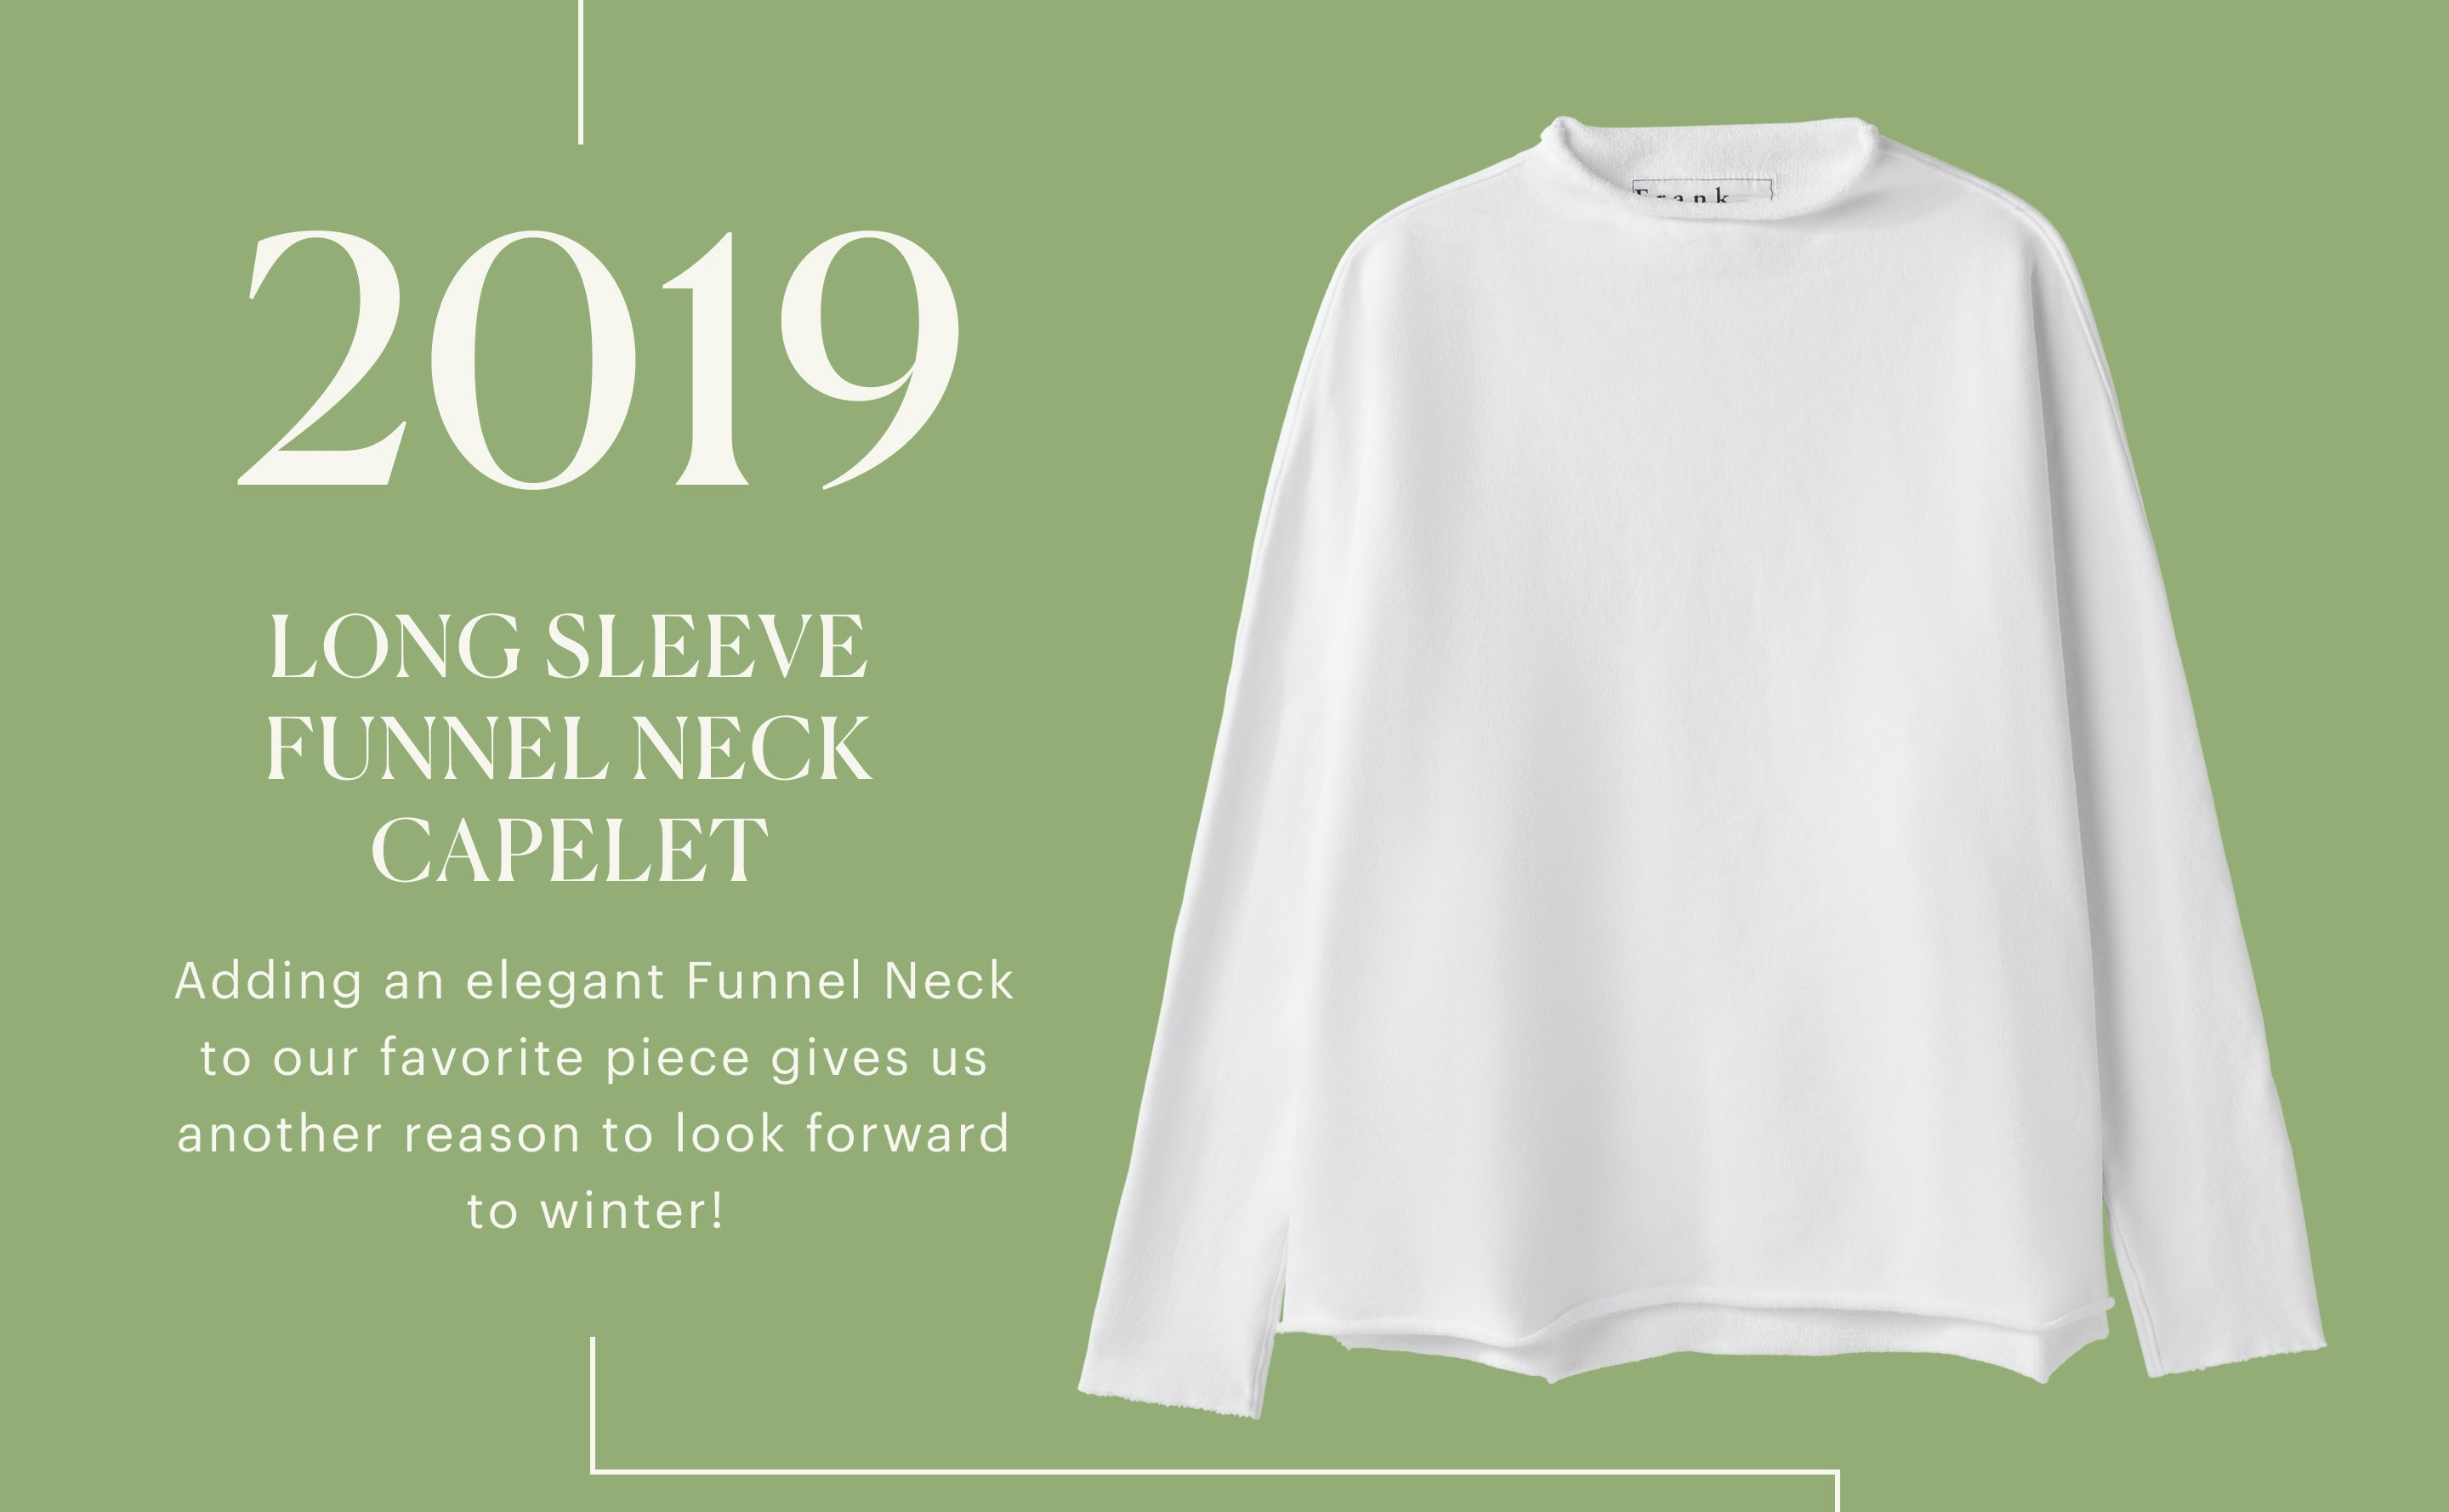 2019 Long Sleeve Funnel Neck Capelet. Adding an elegant Funnel Neck to your favorite pieces gives us another reason to look forward to winter